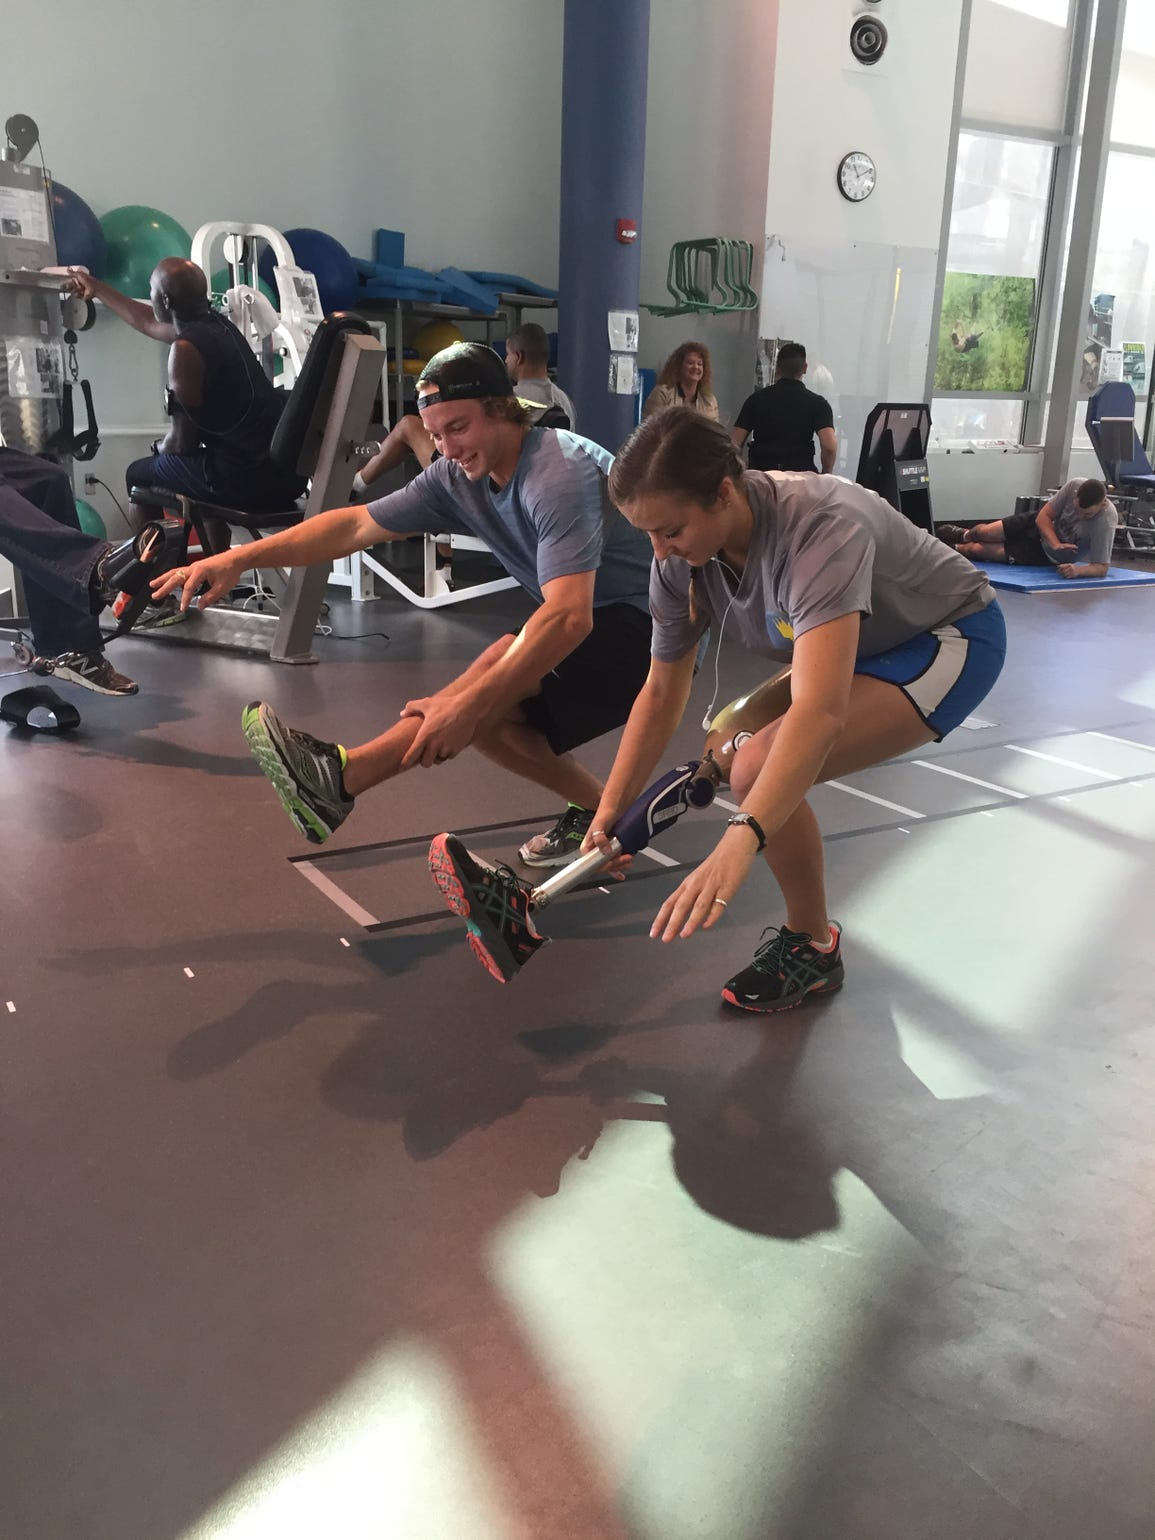 David, left, and Christy go through a workout following